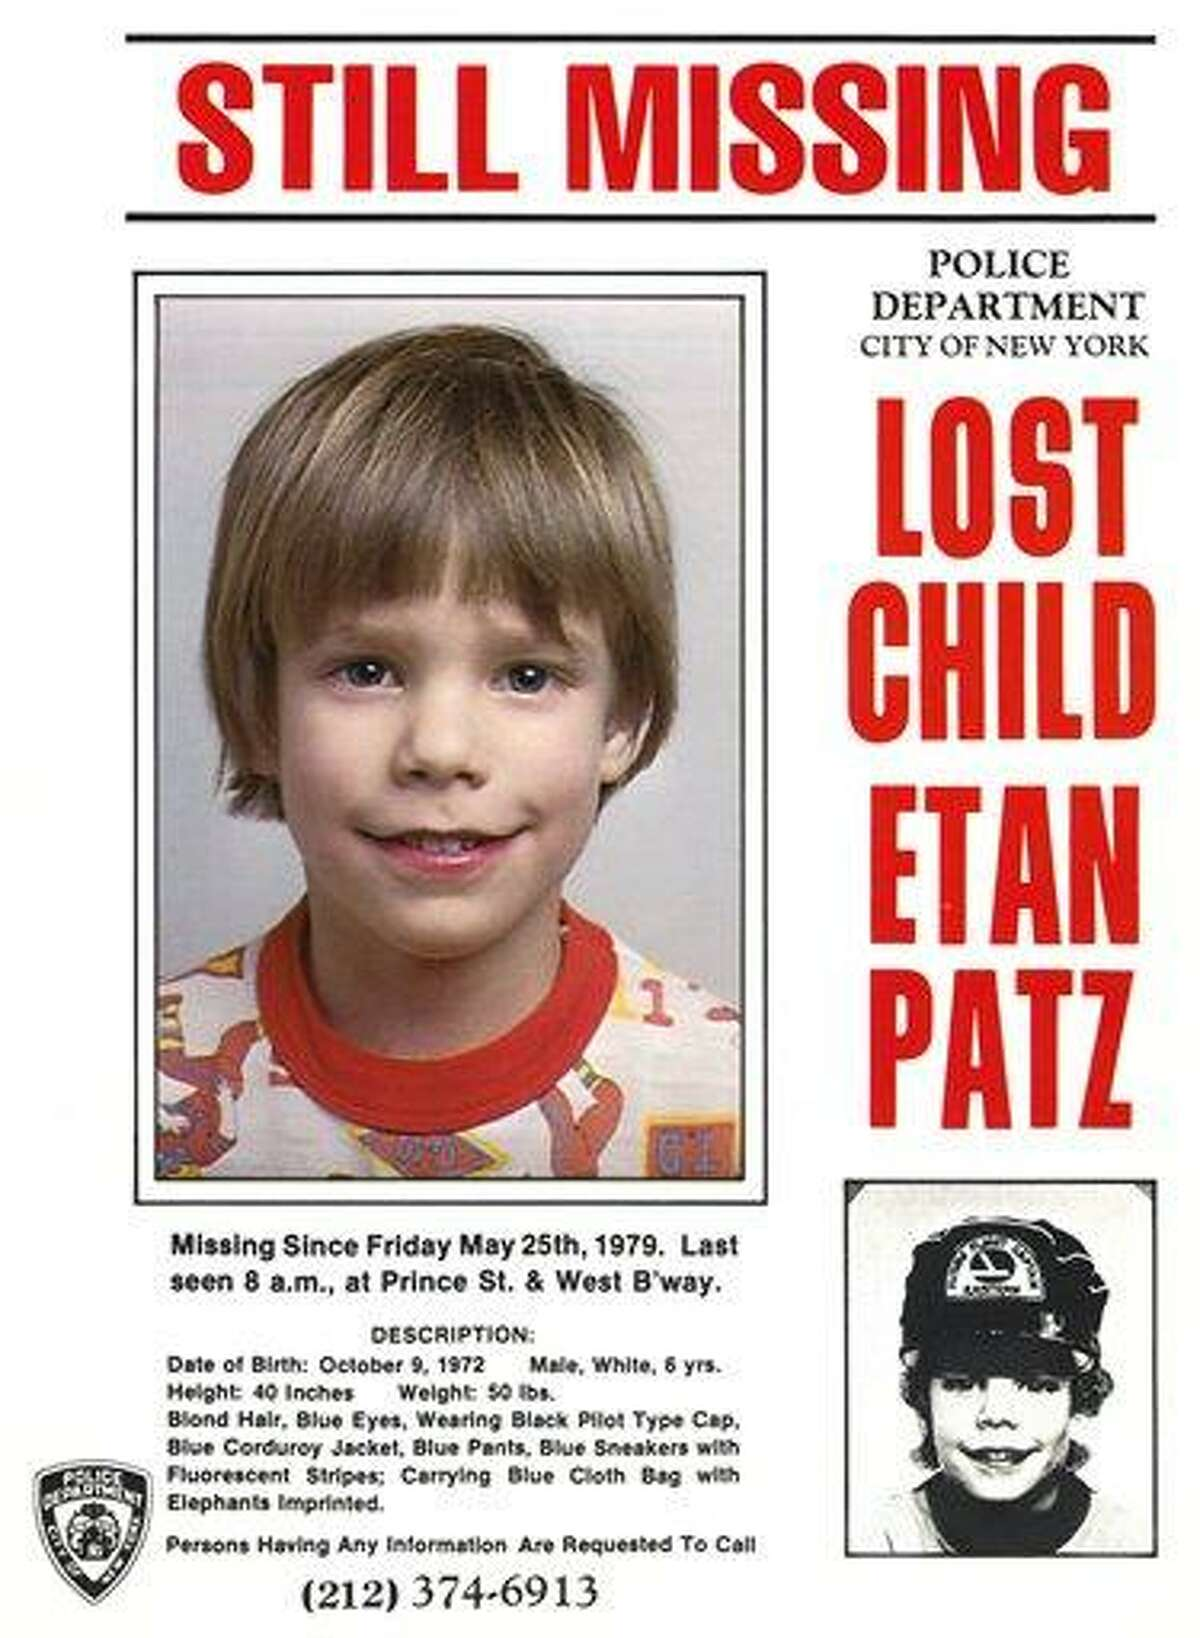 This undated file image shows a flier distributed by the New York Police Department of Etan, who vanished in New York on May 25, 1979. Associated Press